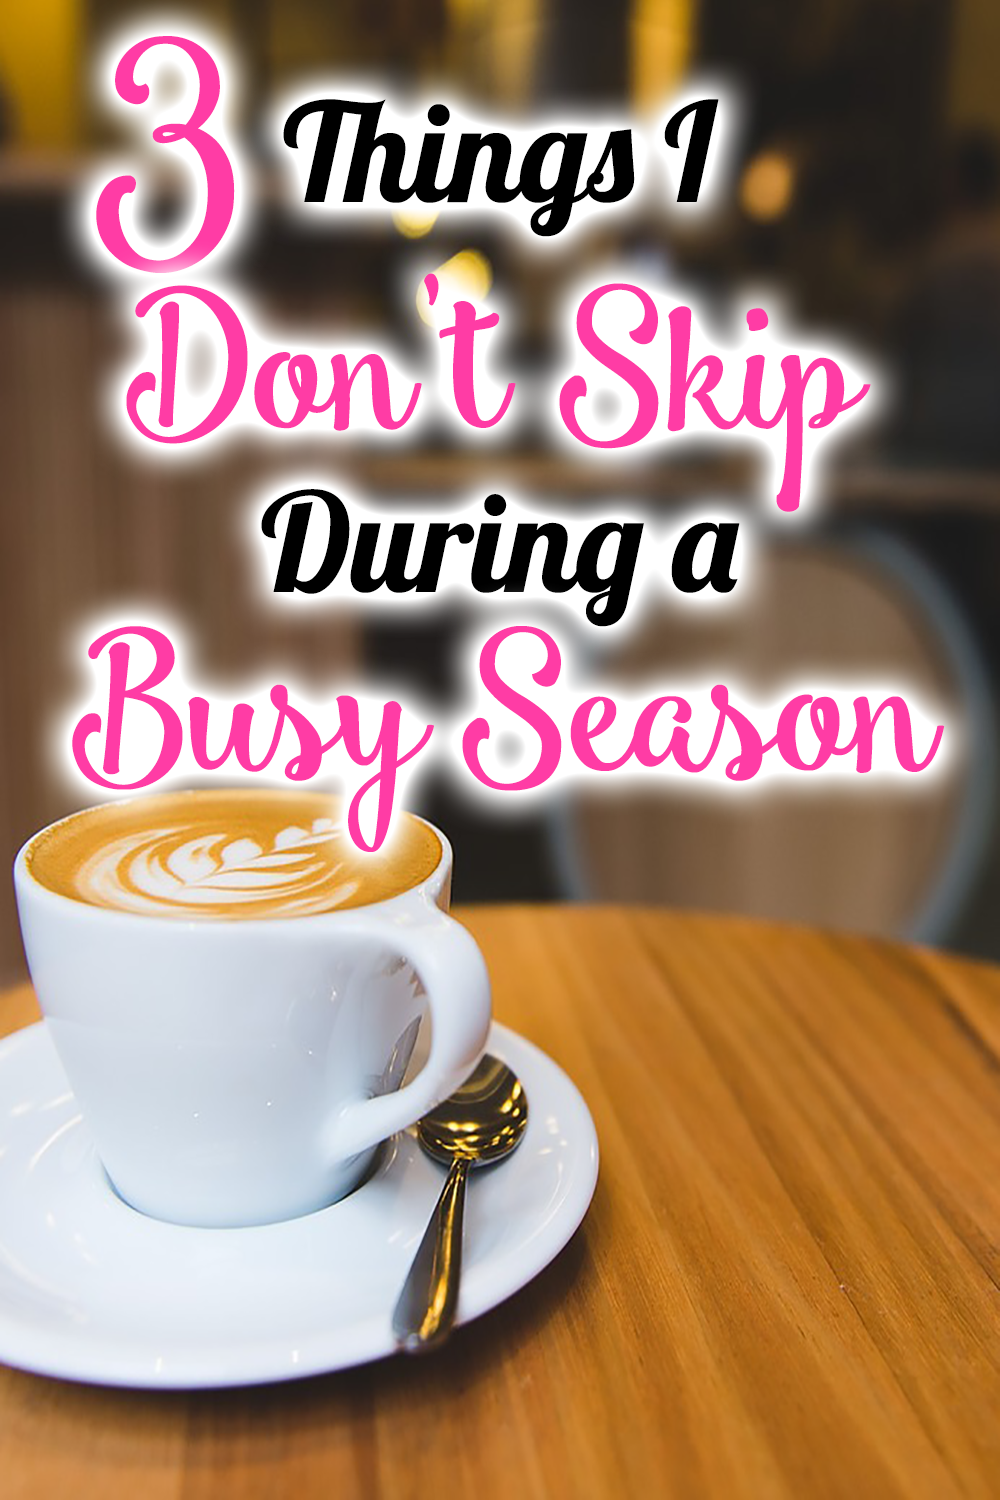 3 Things I Don't Skip During a Busy Season